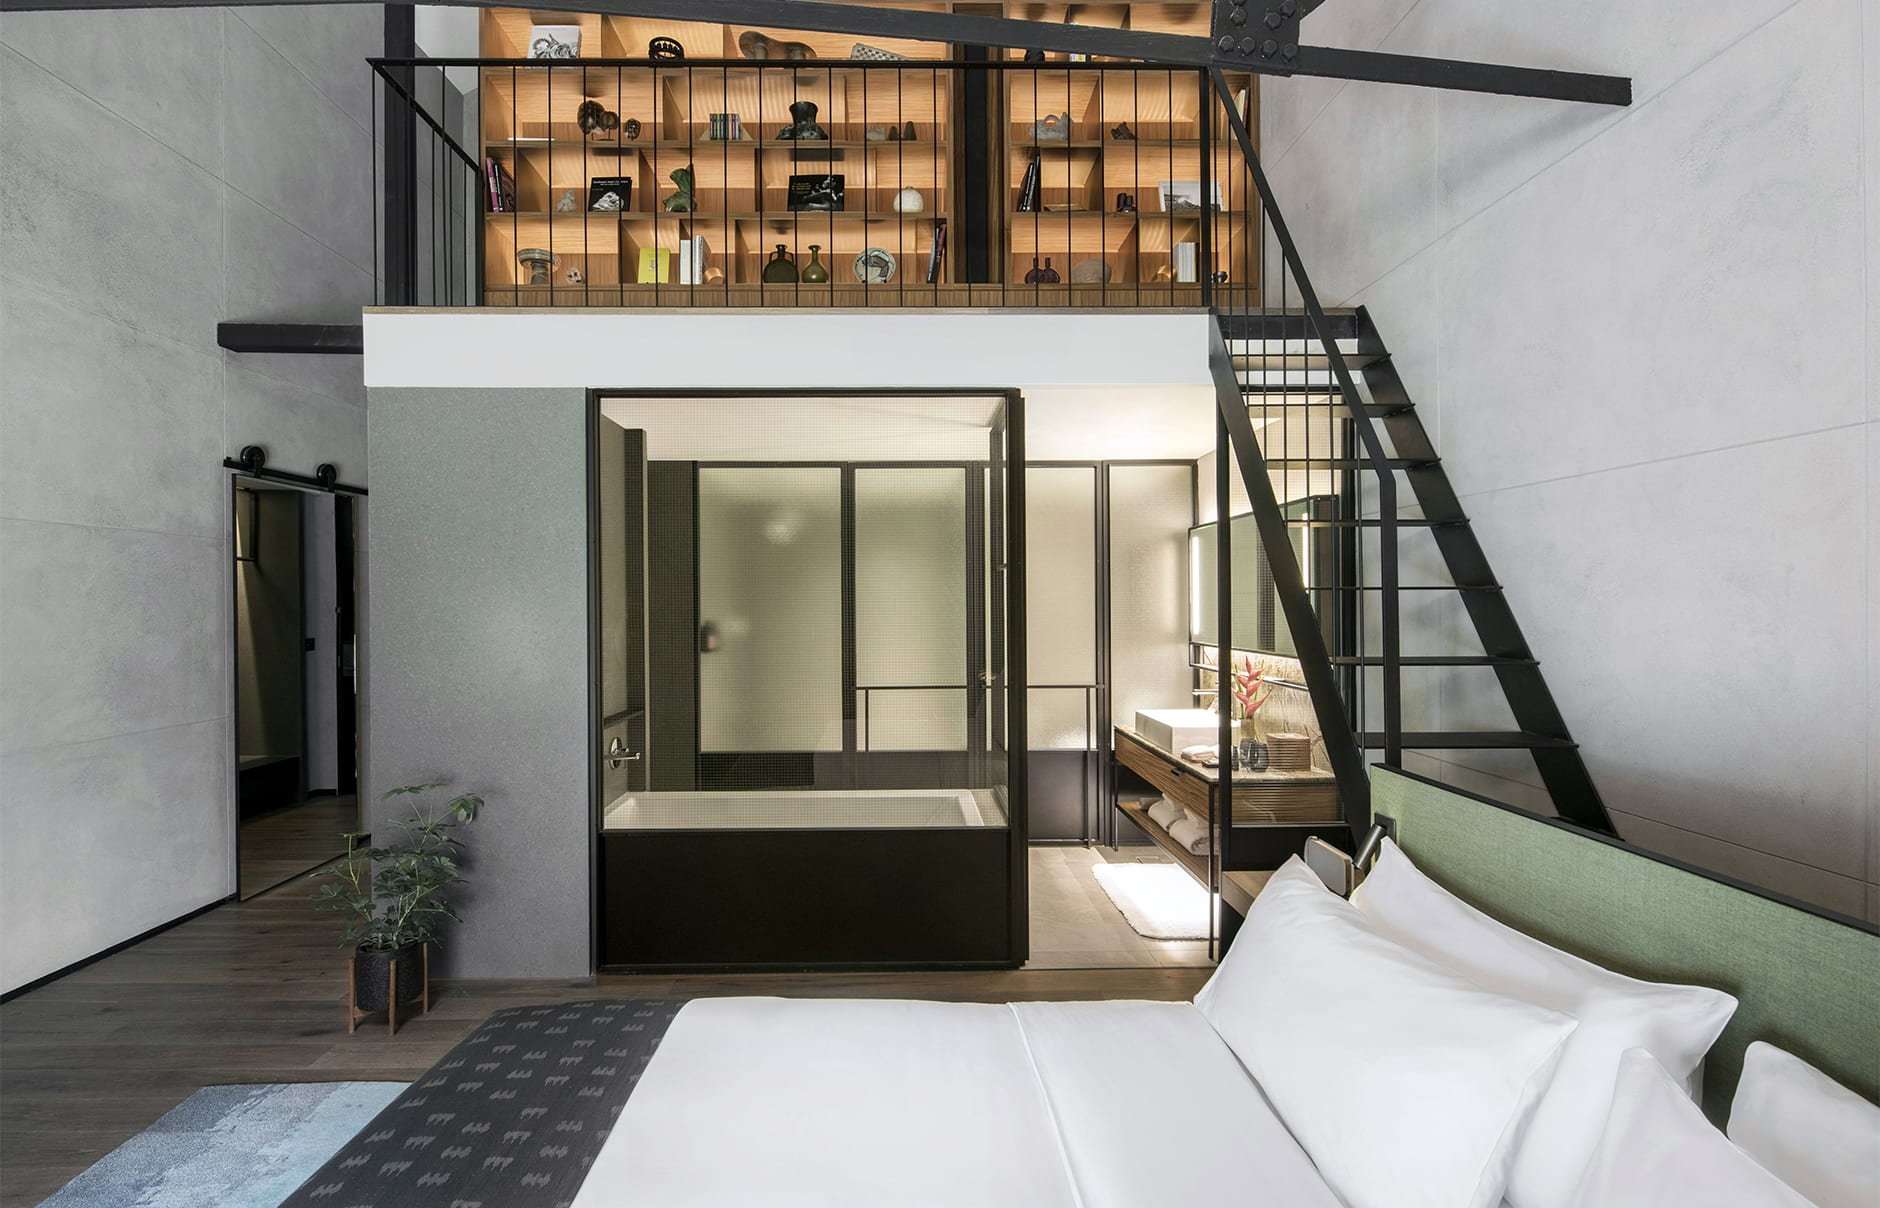 The Warehouse Hotel, Singapore. © The Warehouse Hotel.